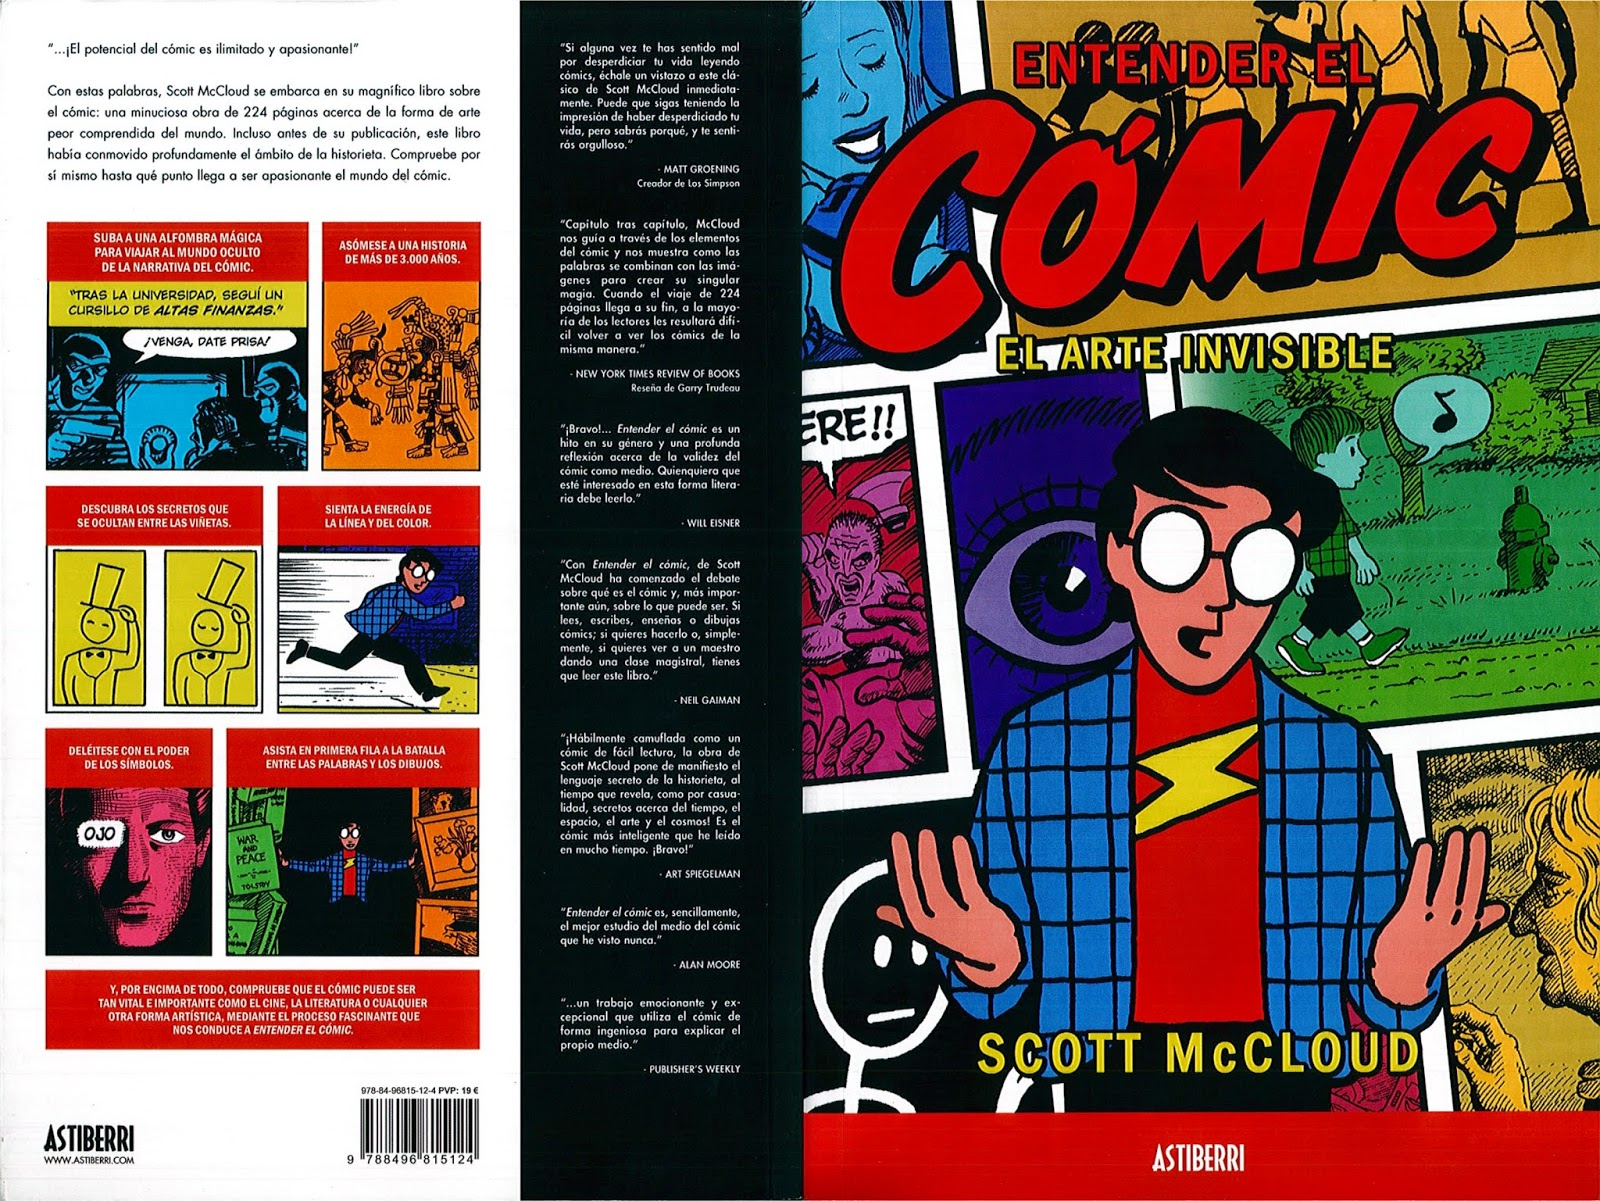 understanding comics About the book in 1994 scott mccloud tore down the wall between high and low culture with understanding comics, a comic book about comics.